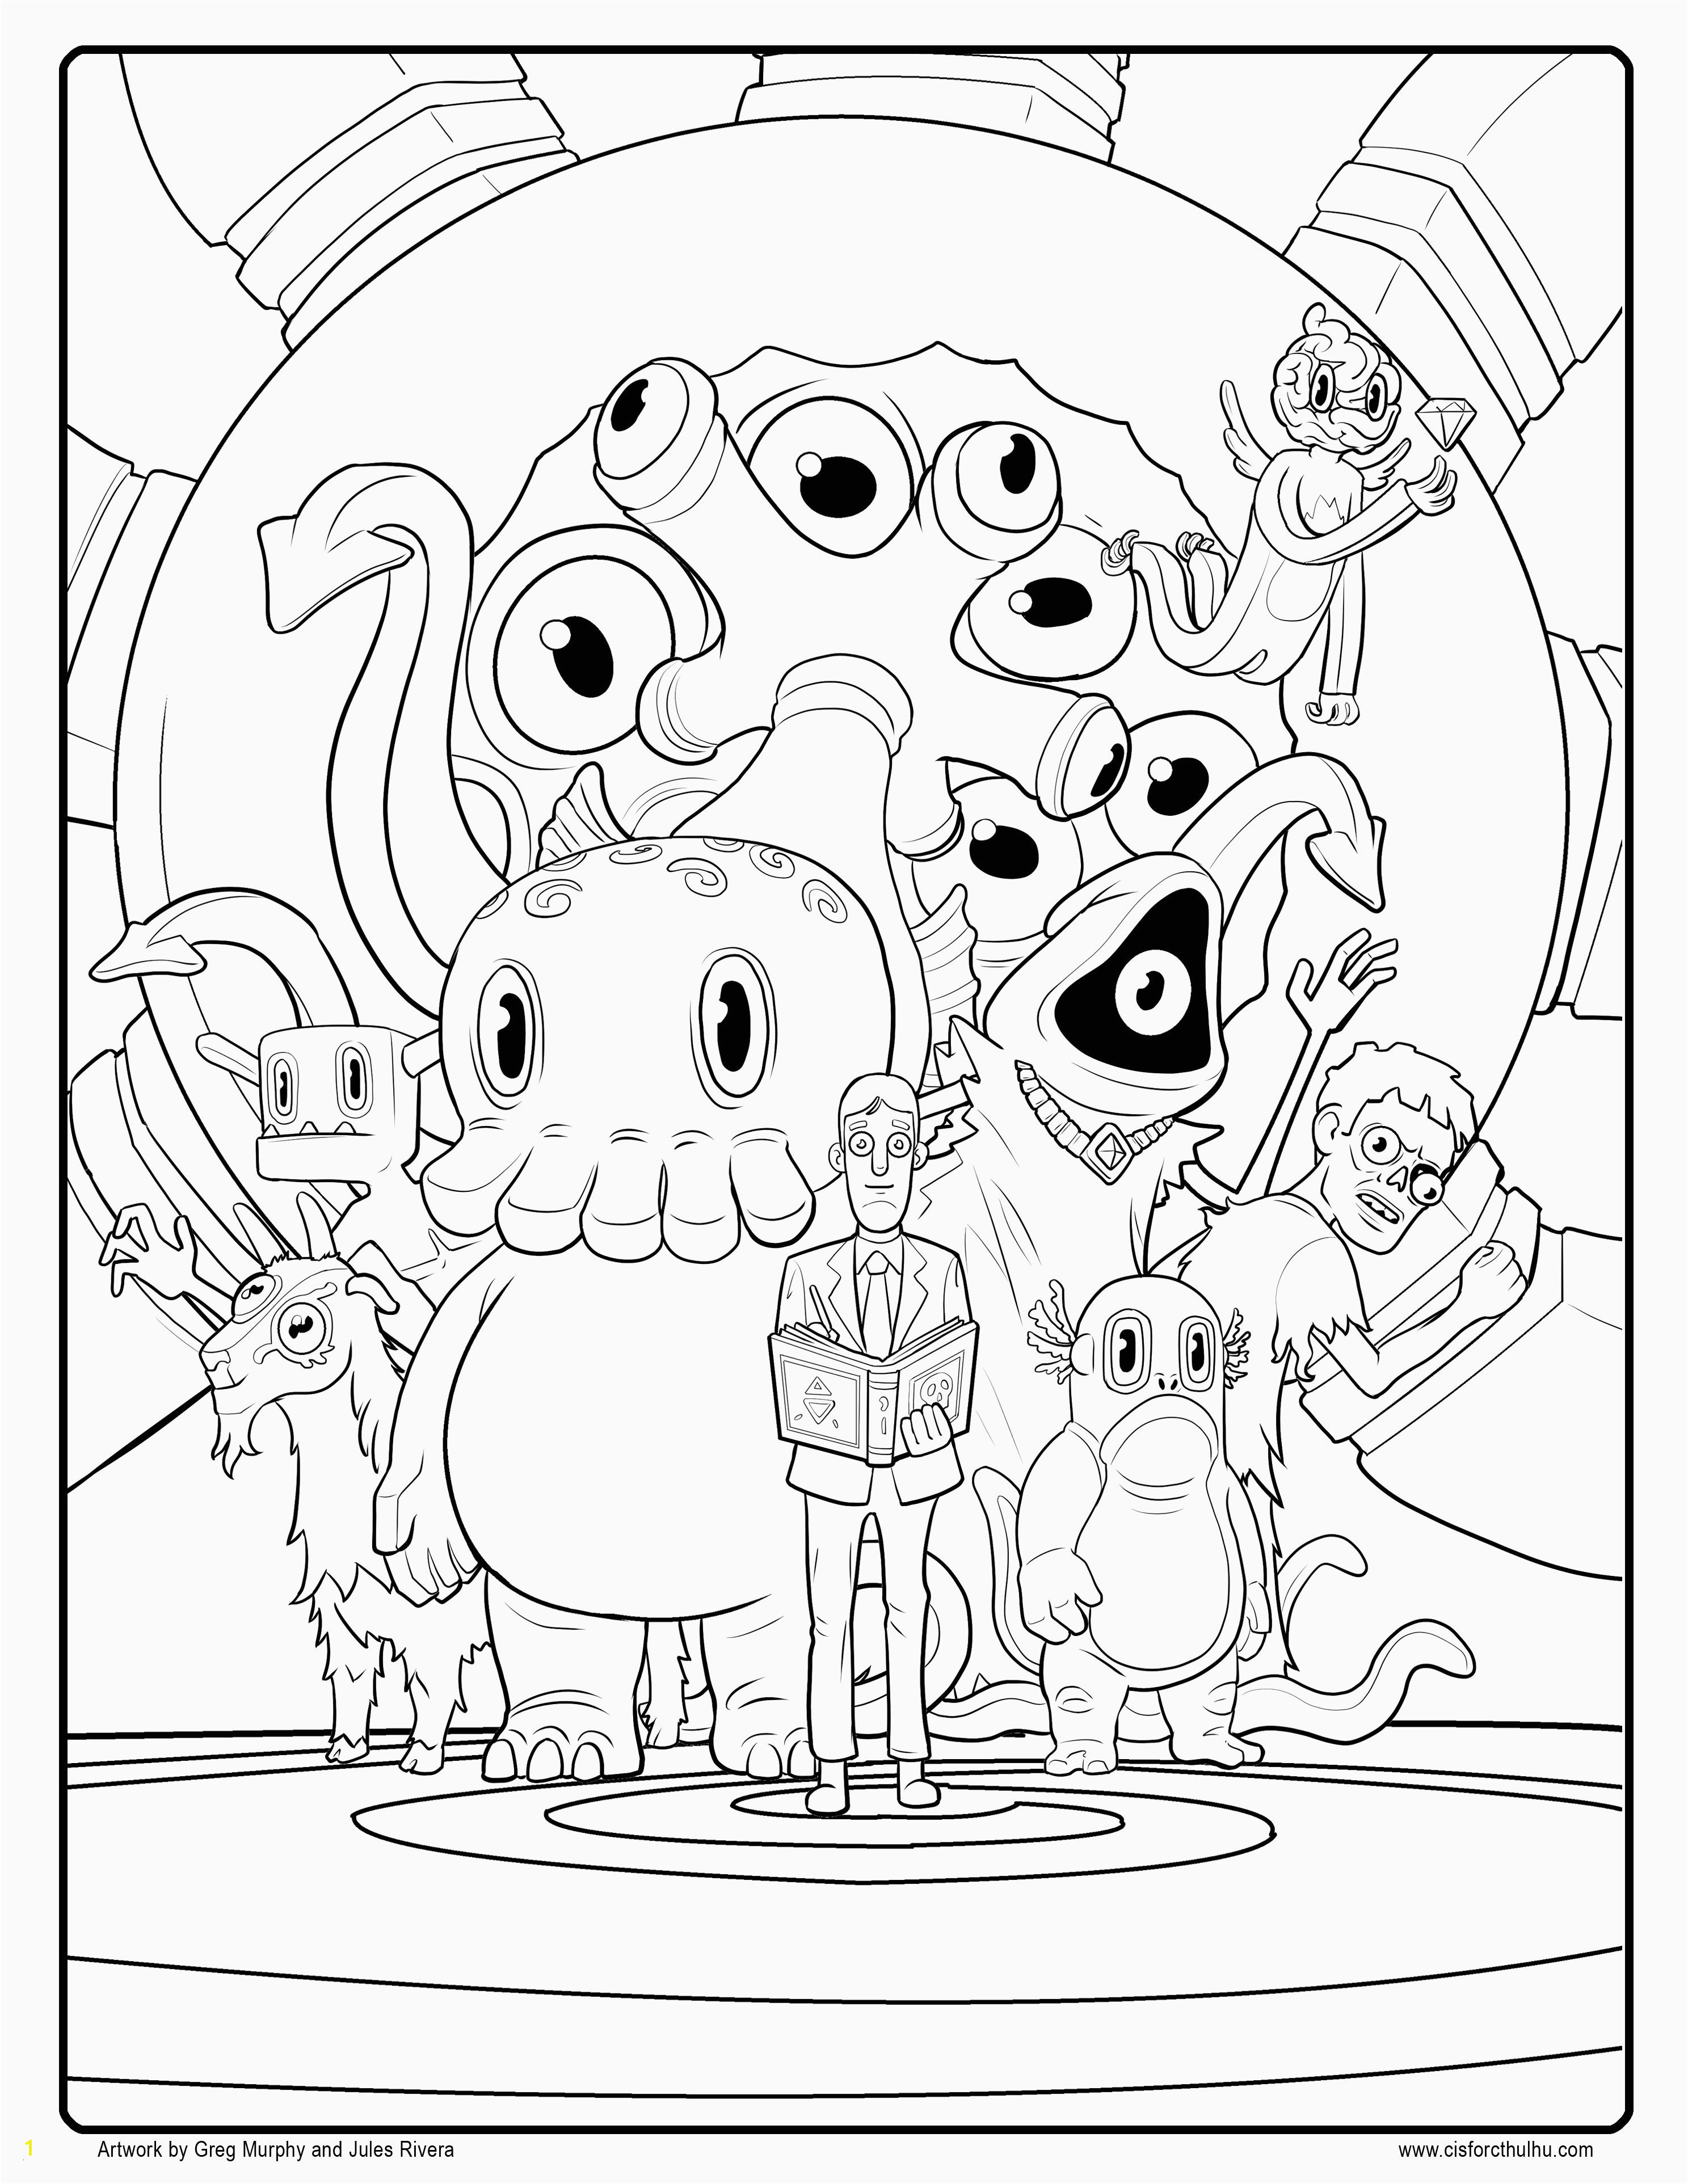 Spongebob artwork Außergewöhnliche Spongebob Squarepants Color Pages 34 Lovely Coloring Jobs